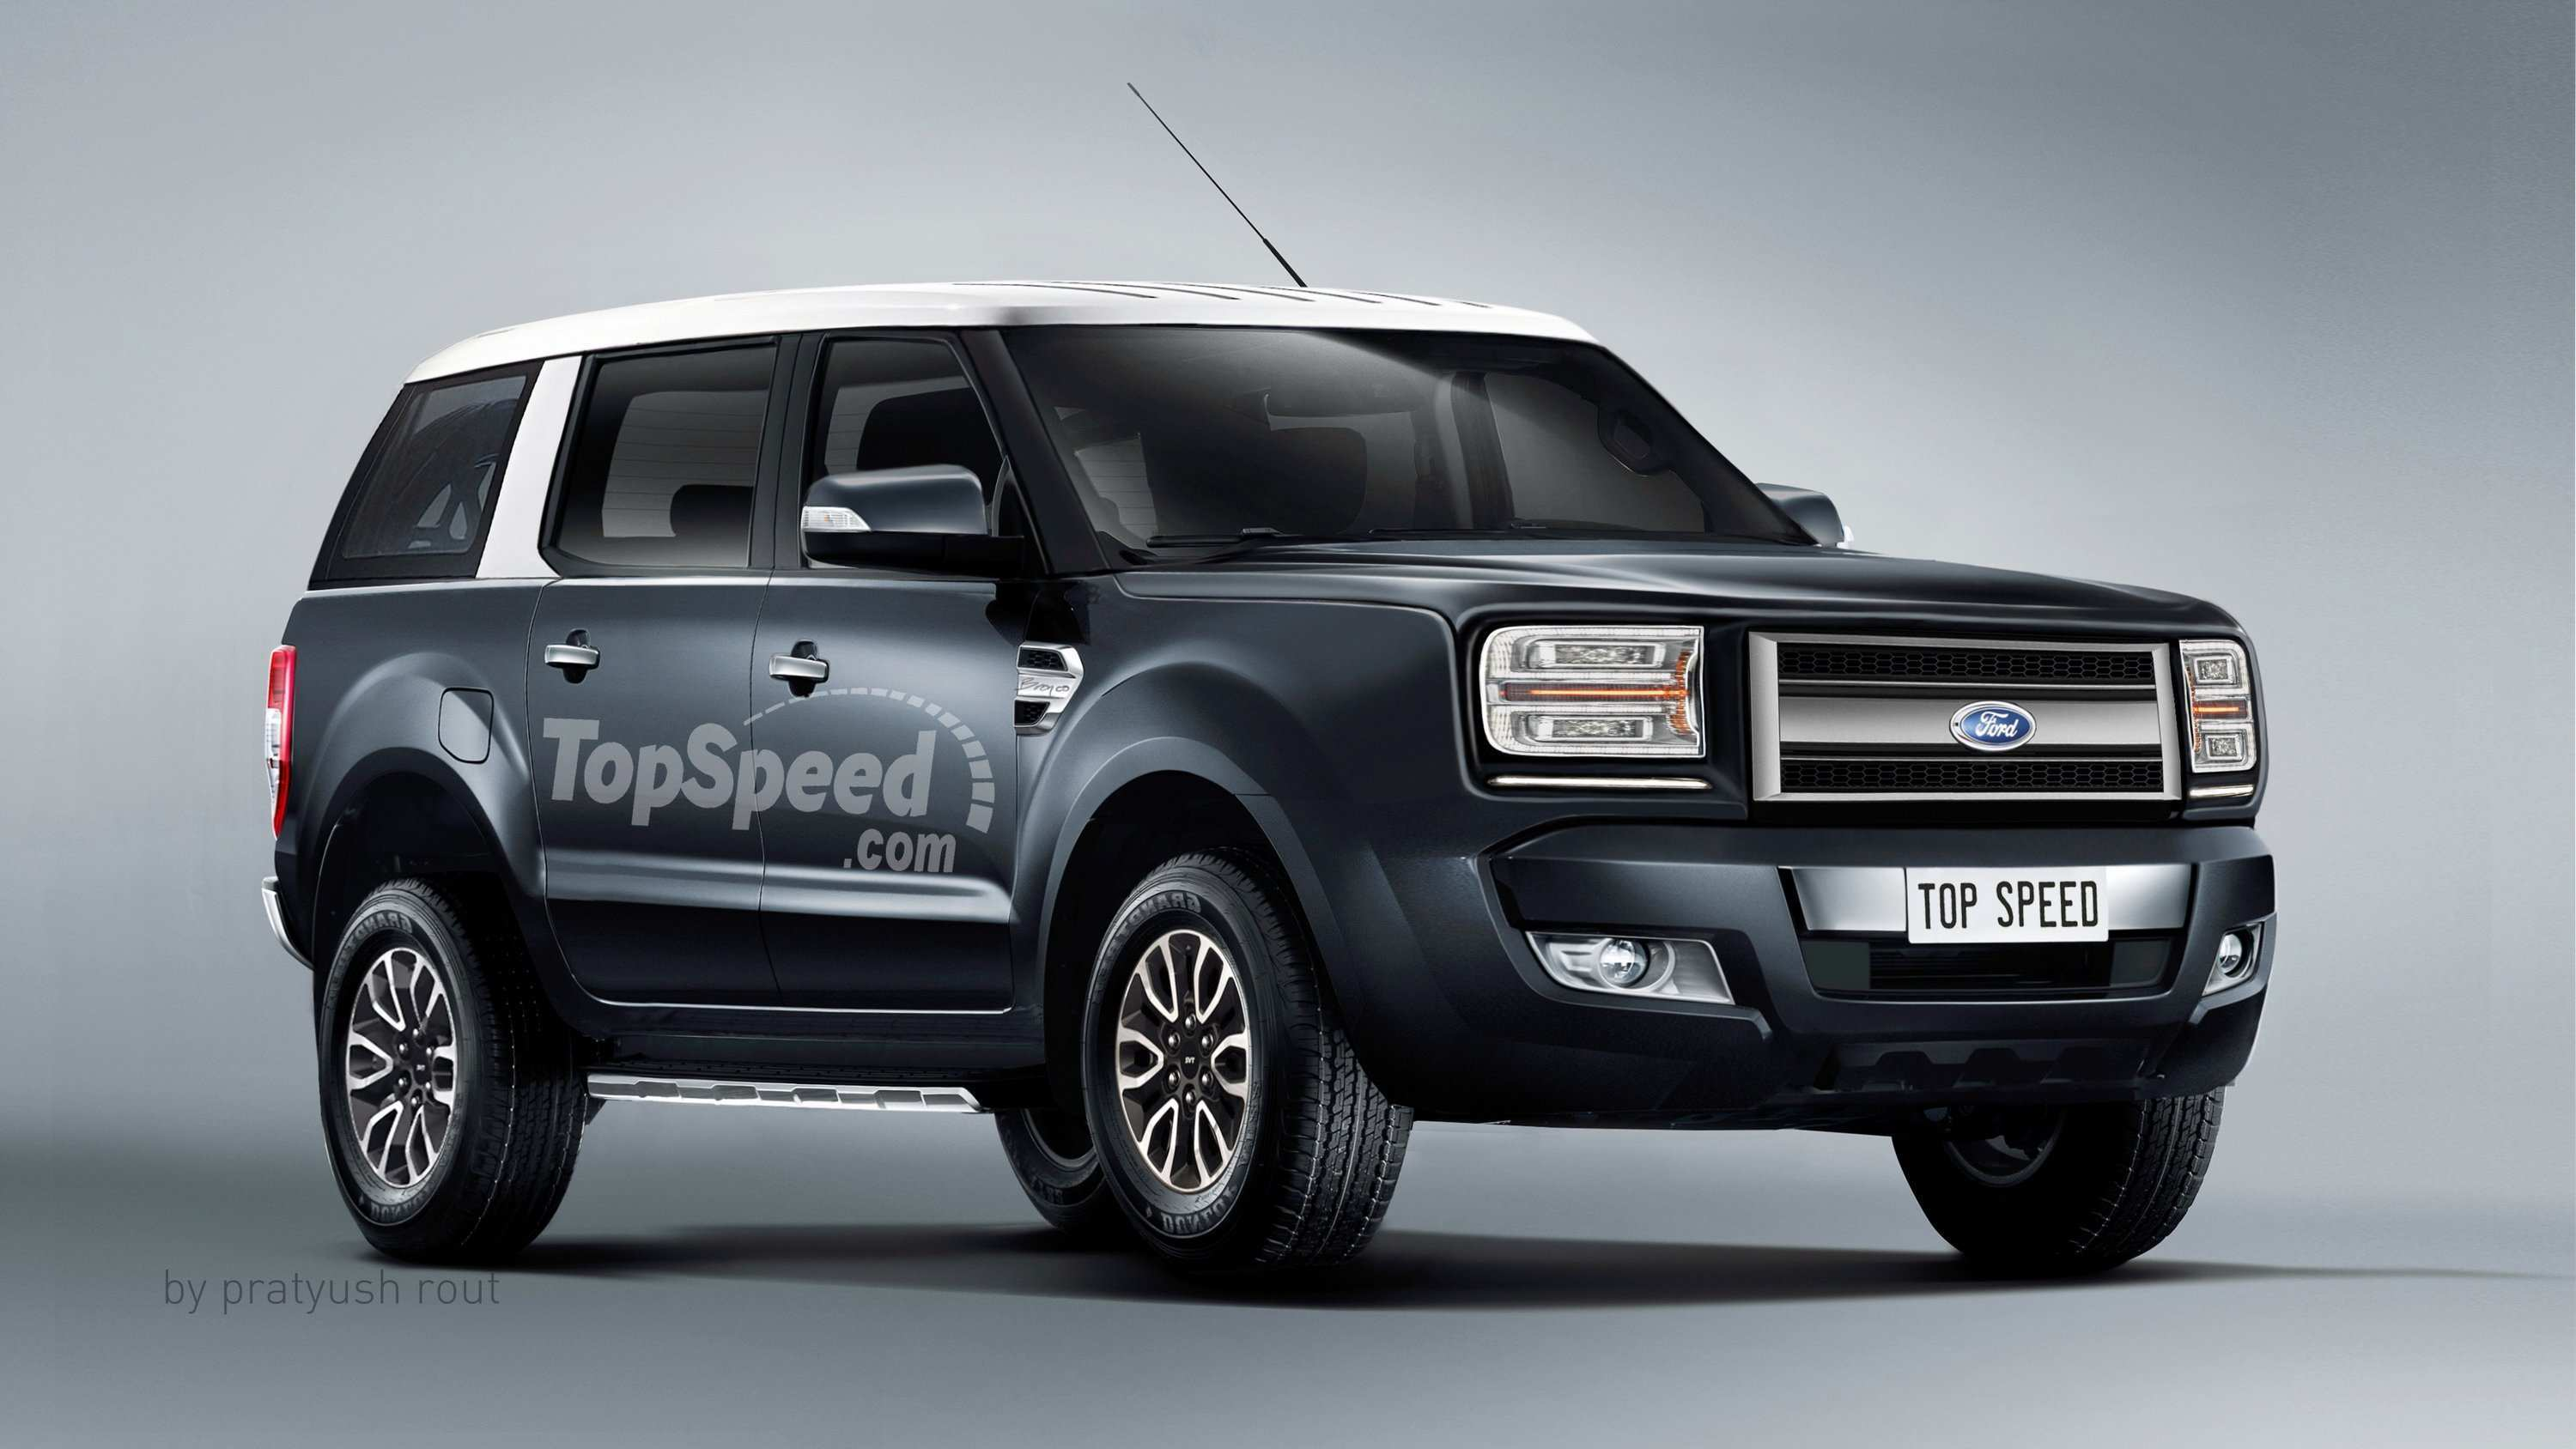 43 A 2020 Ford Bronco Wallpaper Photos